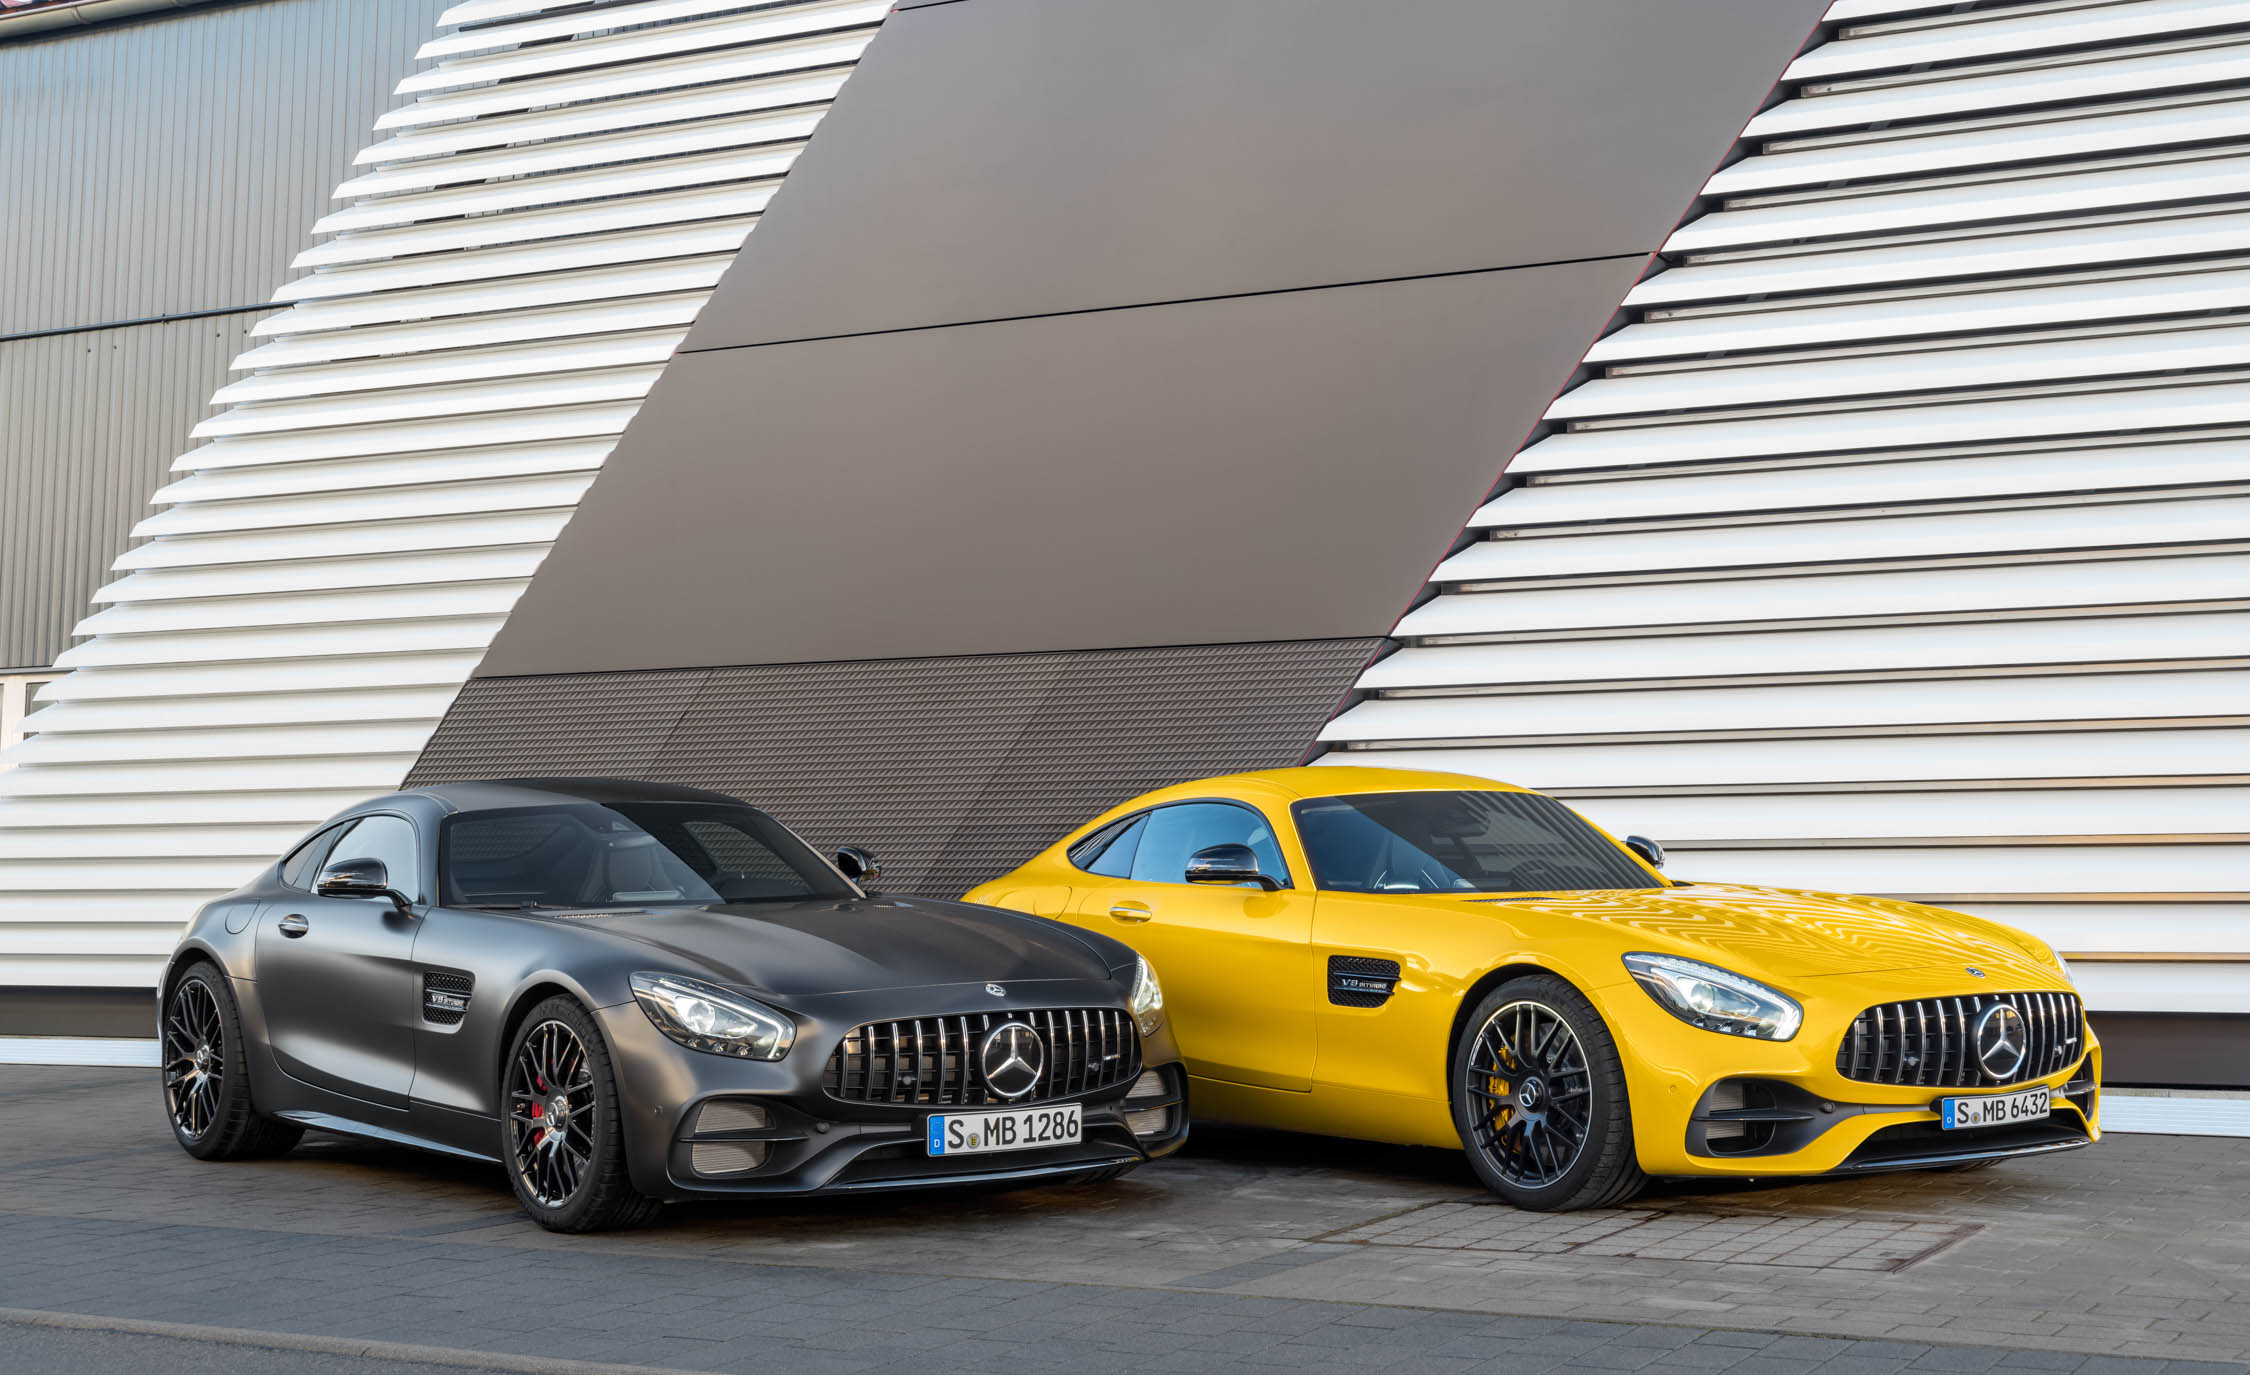 2018 Mercedes Amg Gt S And 2018 Mercedes Amg Gt C (Photo 17 of 23)